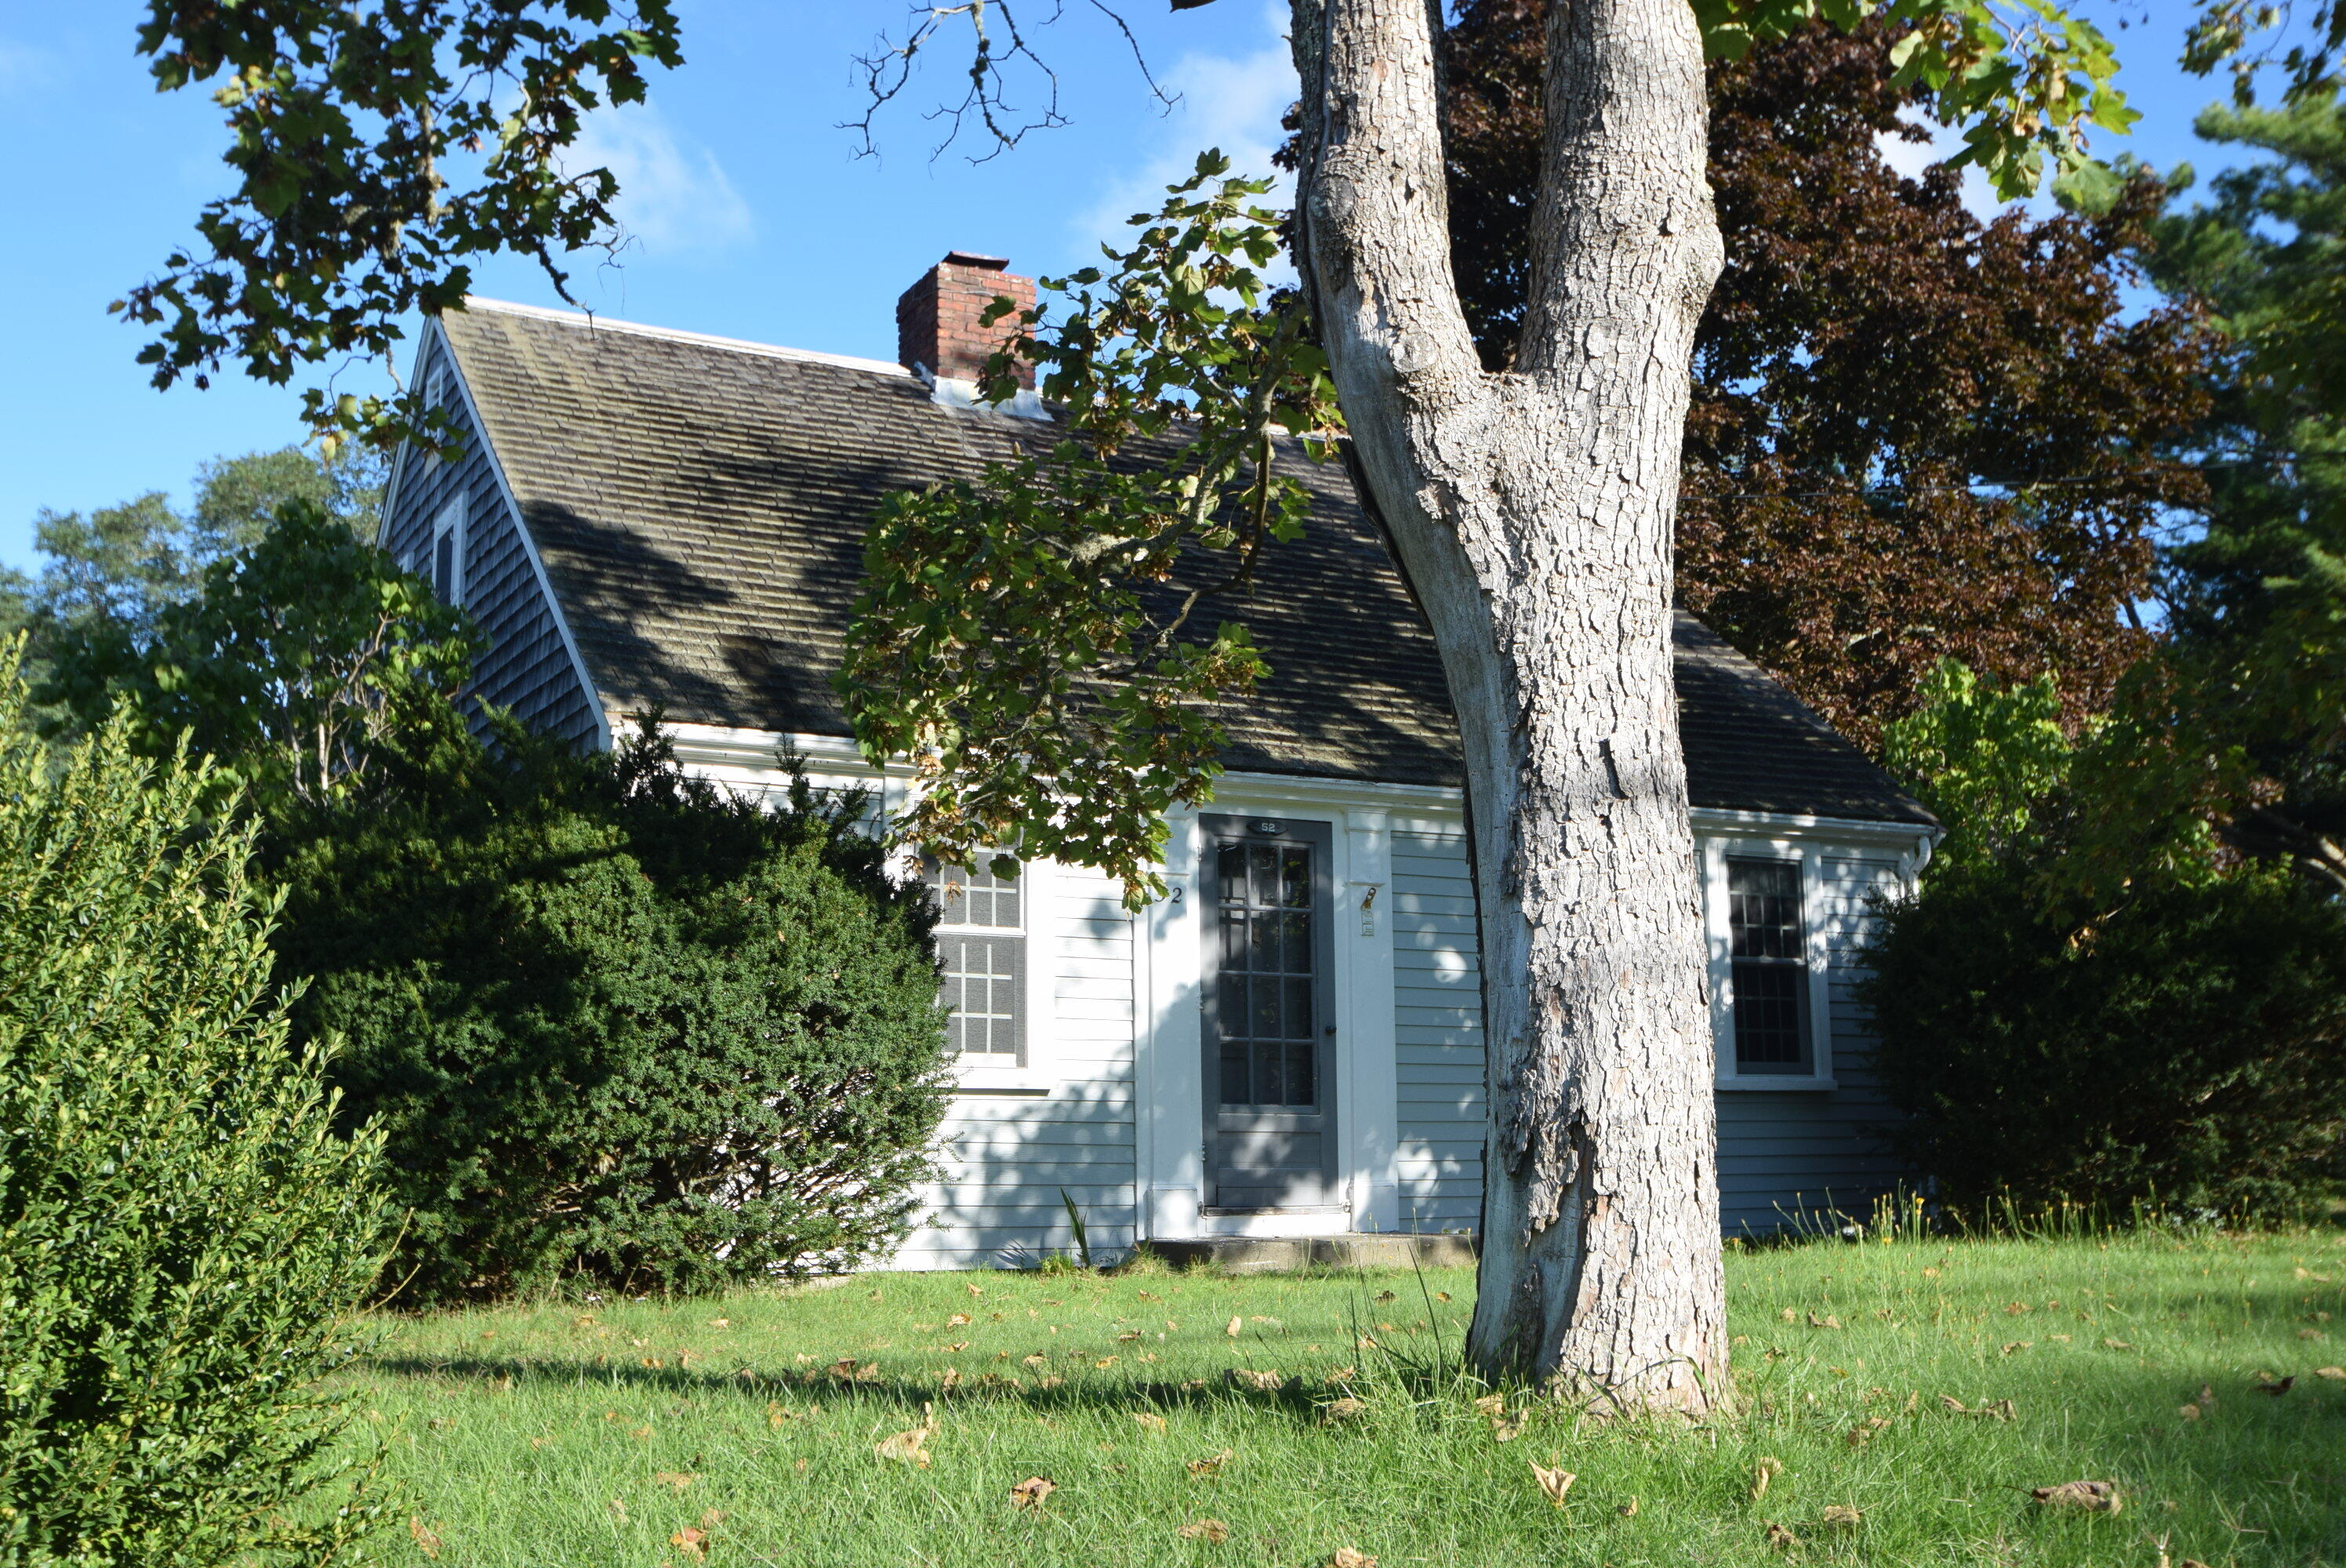 click to view more details 52 Locust Road, Orleans, MA 02653